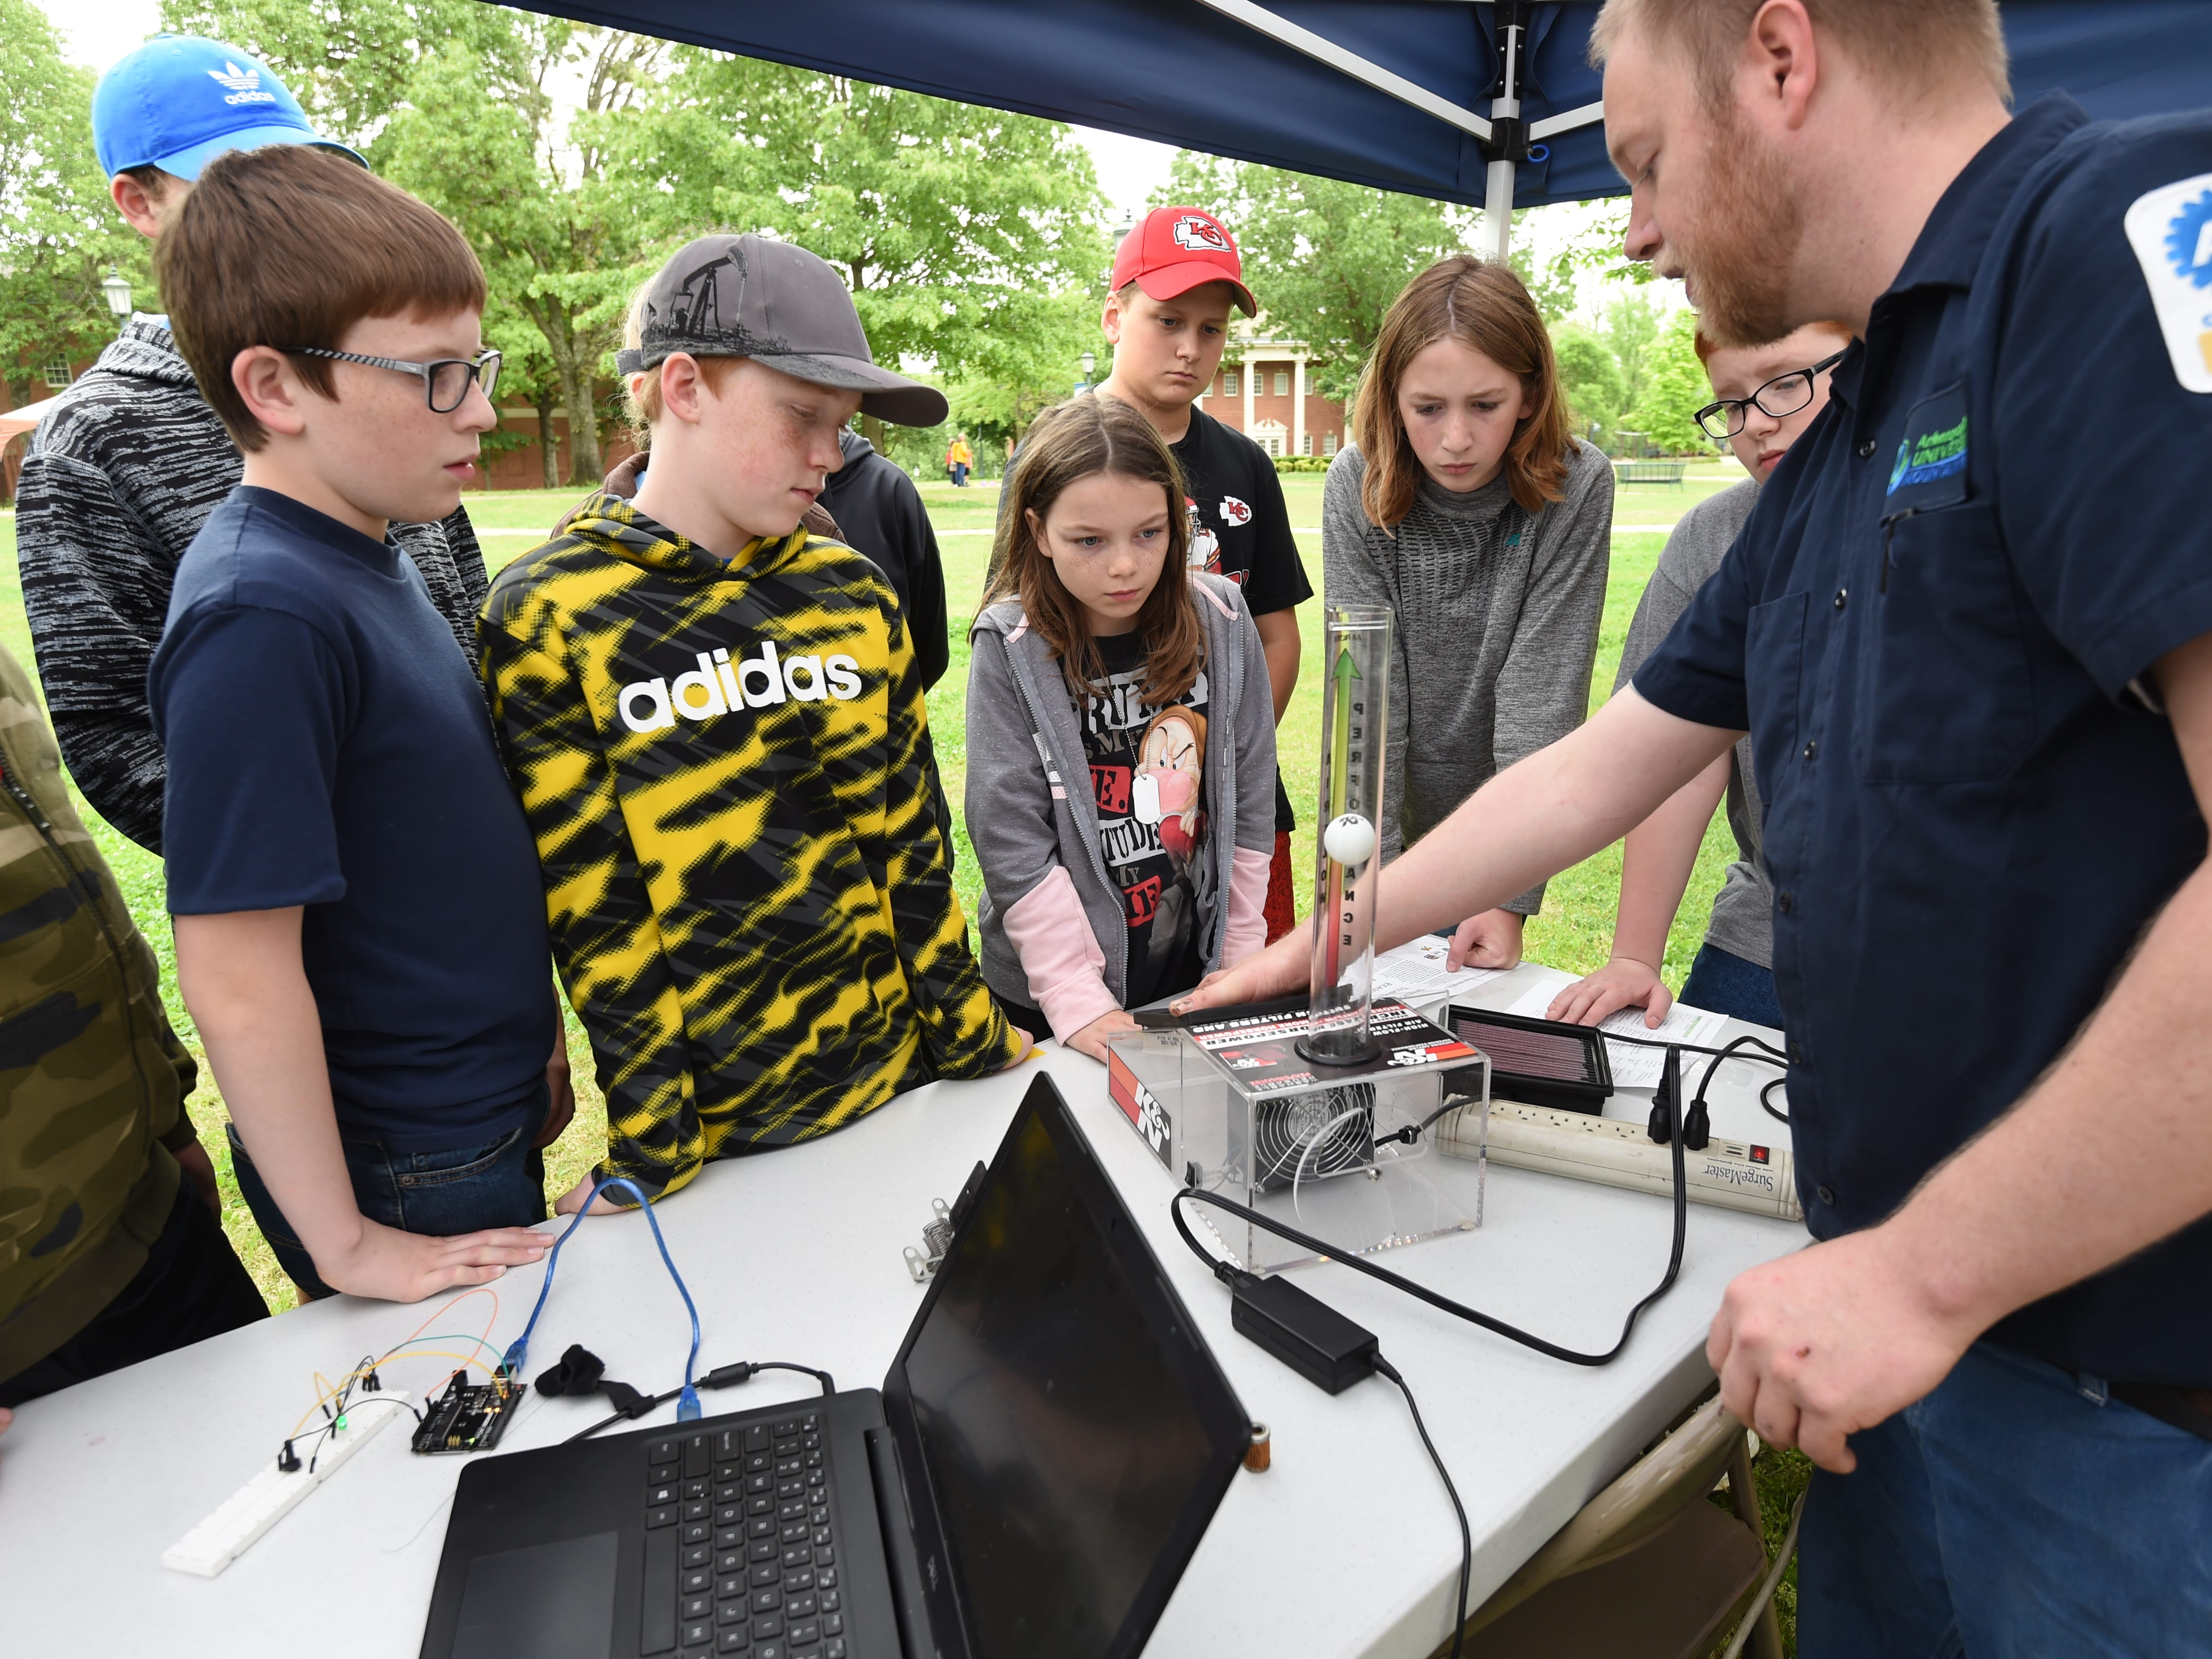 Students from schools across the Twin Lakes Area gathered Friday at Arkansas State University Mountain Home for the S.T.R.E.A. M. 2.0 event. The event is designed to teach kids about science, technology, reading, engineering, arithmetic and mathematics through participating in a variety of hands-on activities.